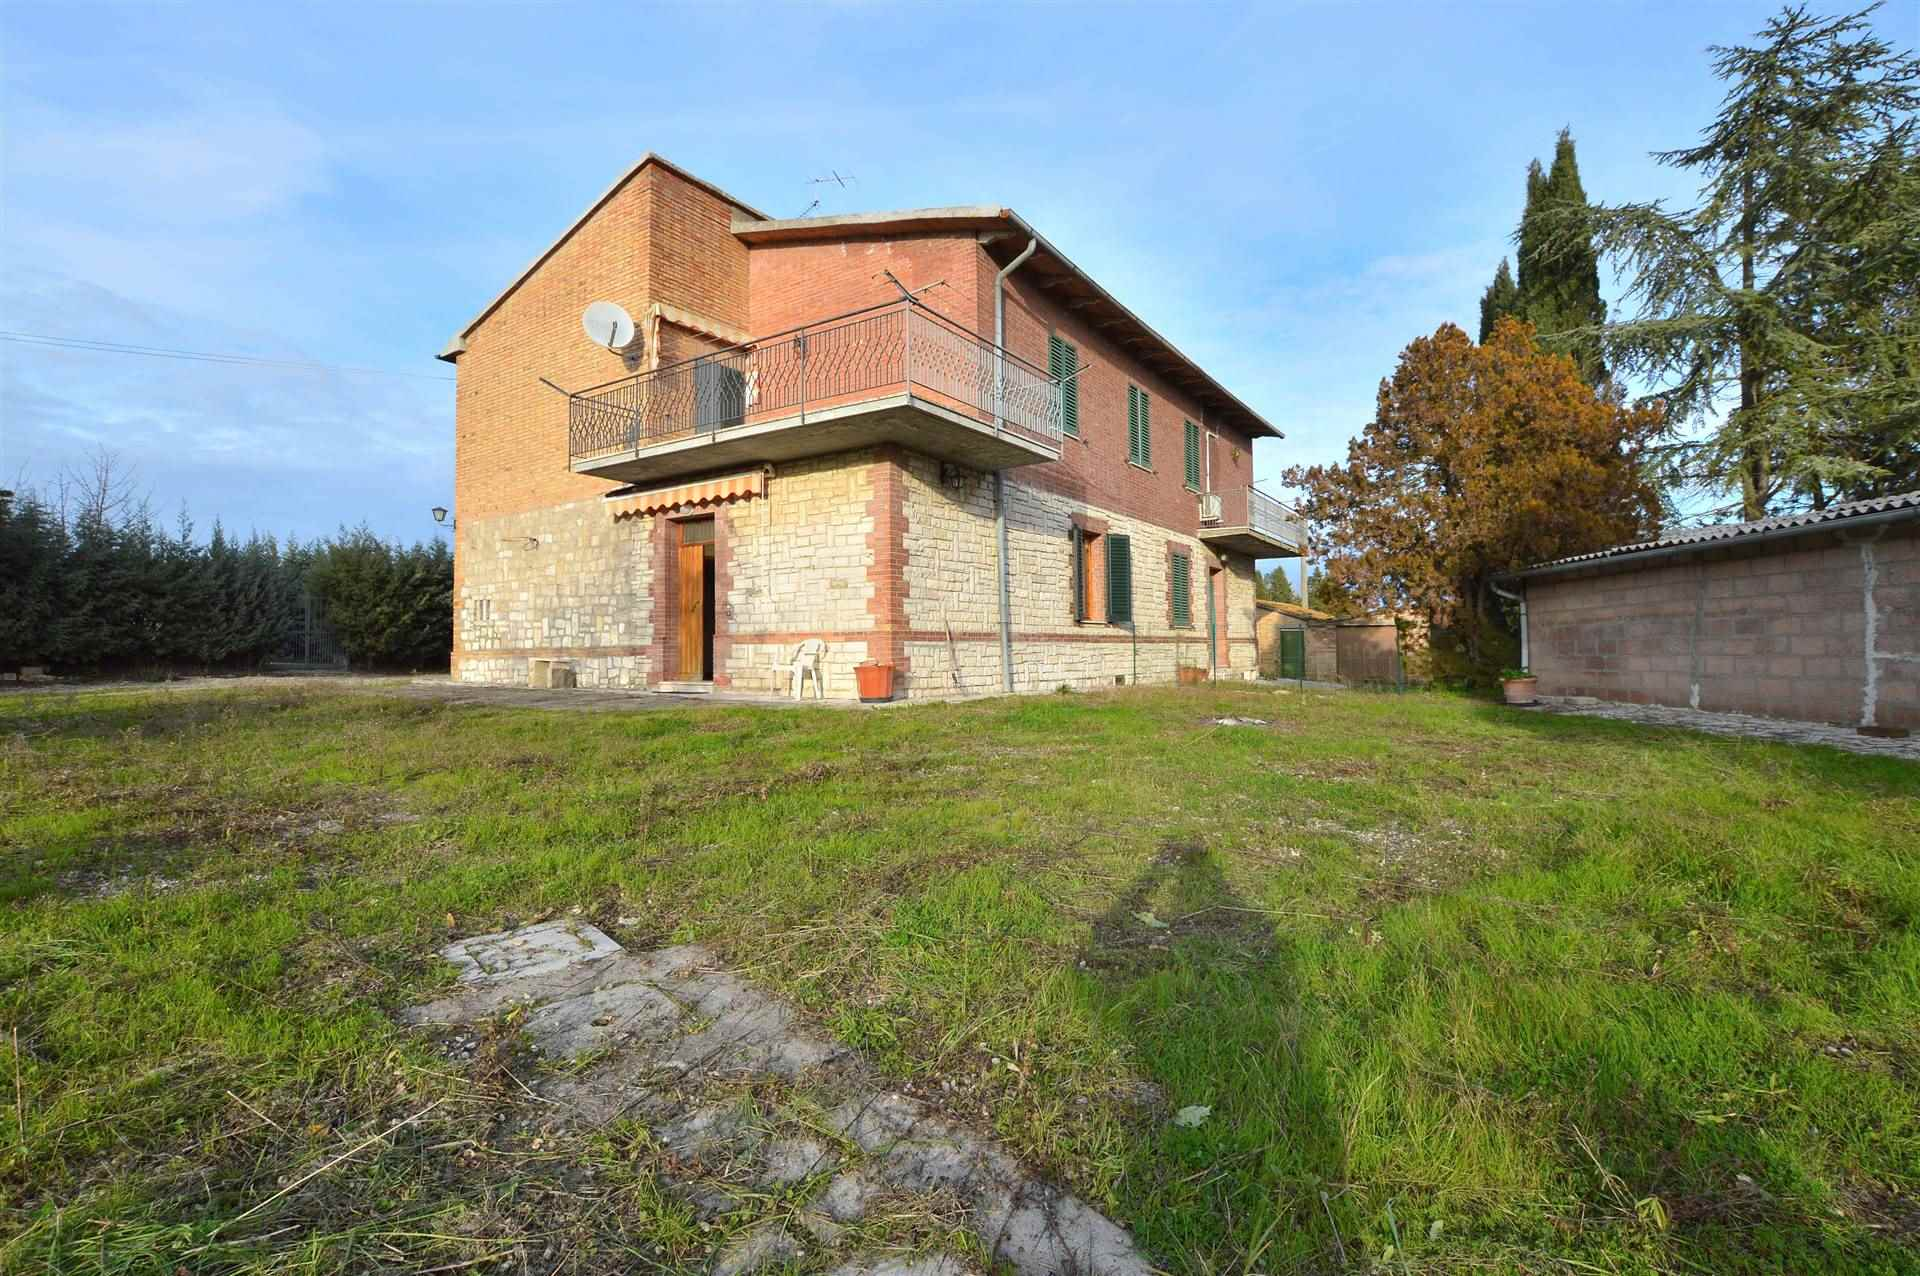 ASCIANO, Apartment for sale of 152 Sq. mt., Be restored, Heating Individual heating system, Energetic class: G, Epi: 175 kwh/m2 year, placed at